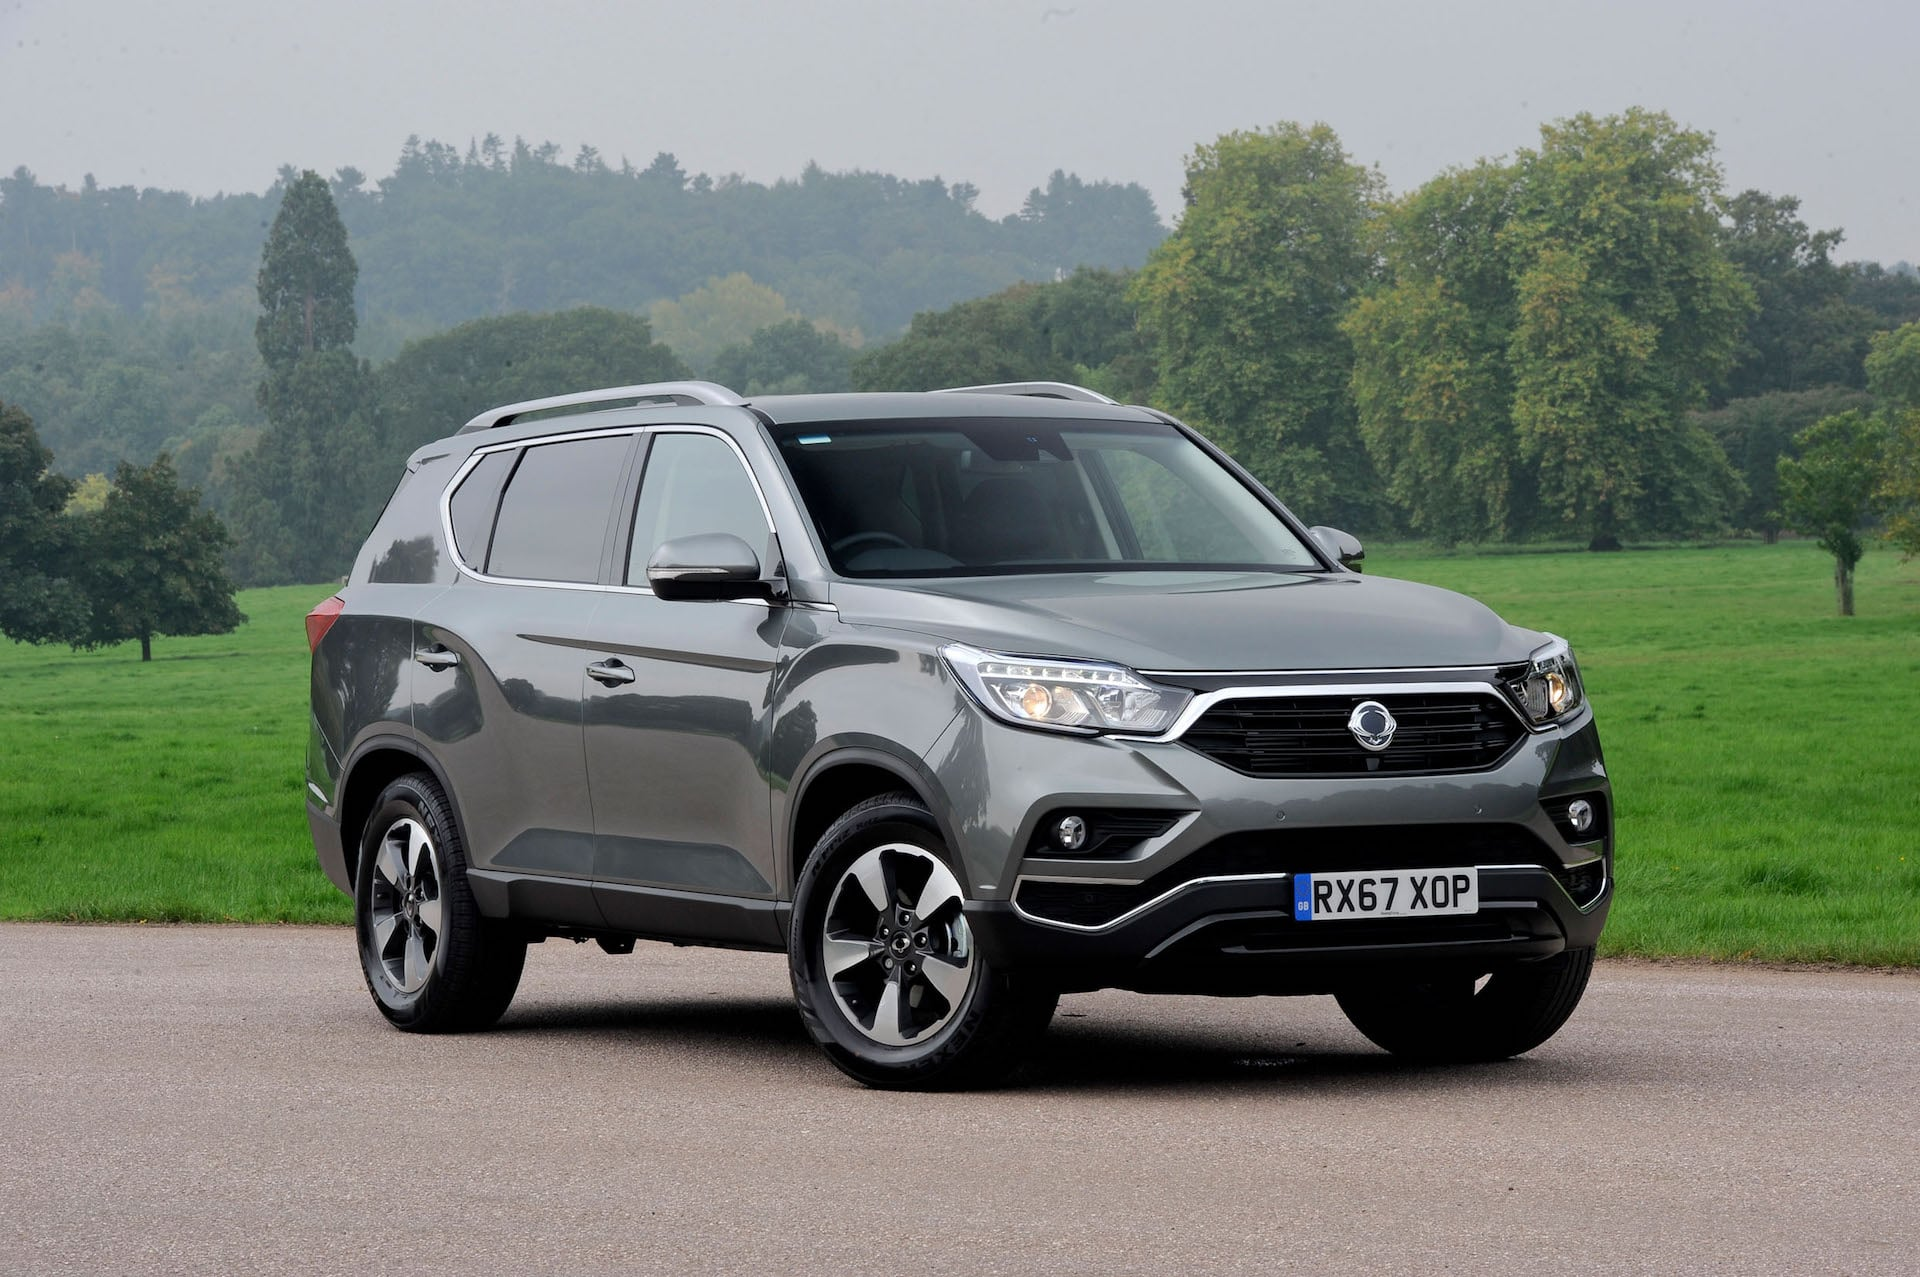 SsangYong Rexton large SUV review 2017   The Car Expert